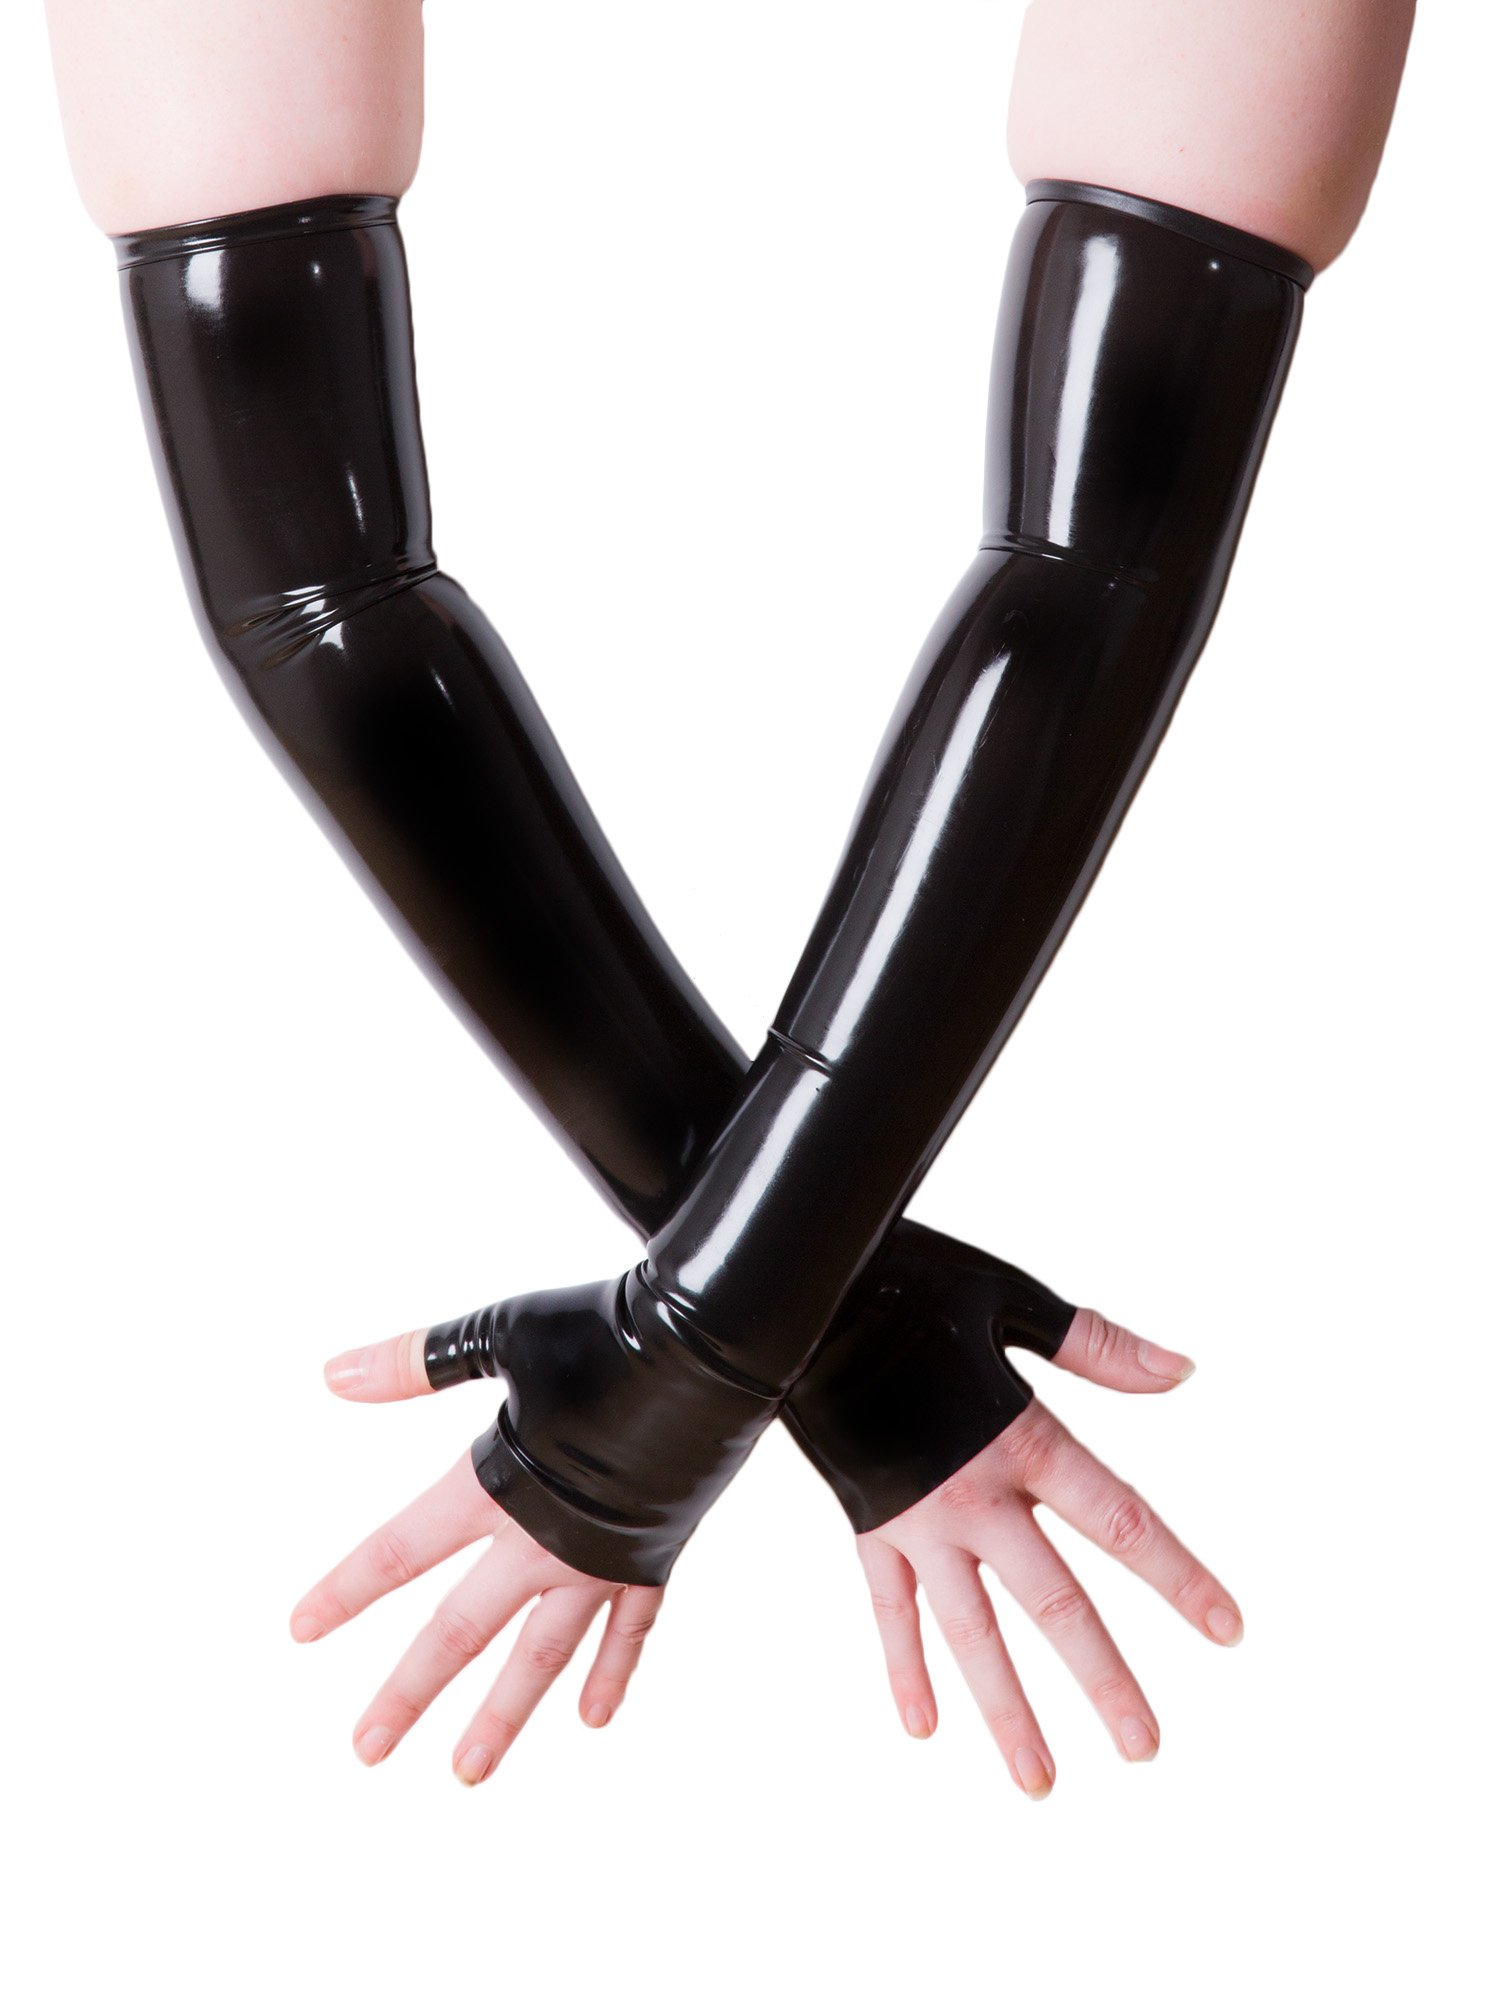 Raw Moulded Rubber Women's in Rubber Black size UK 10 (S)